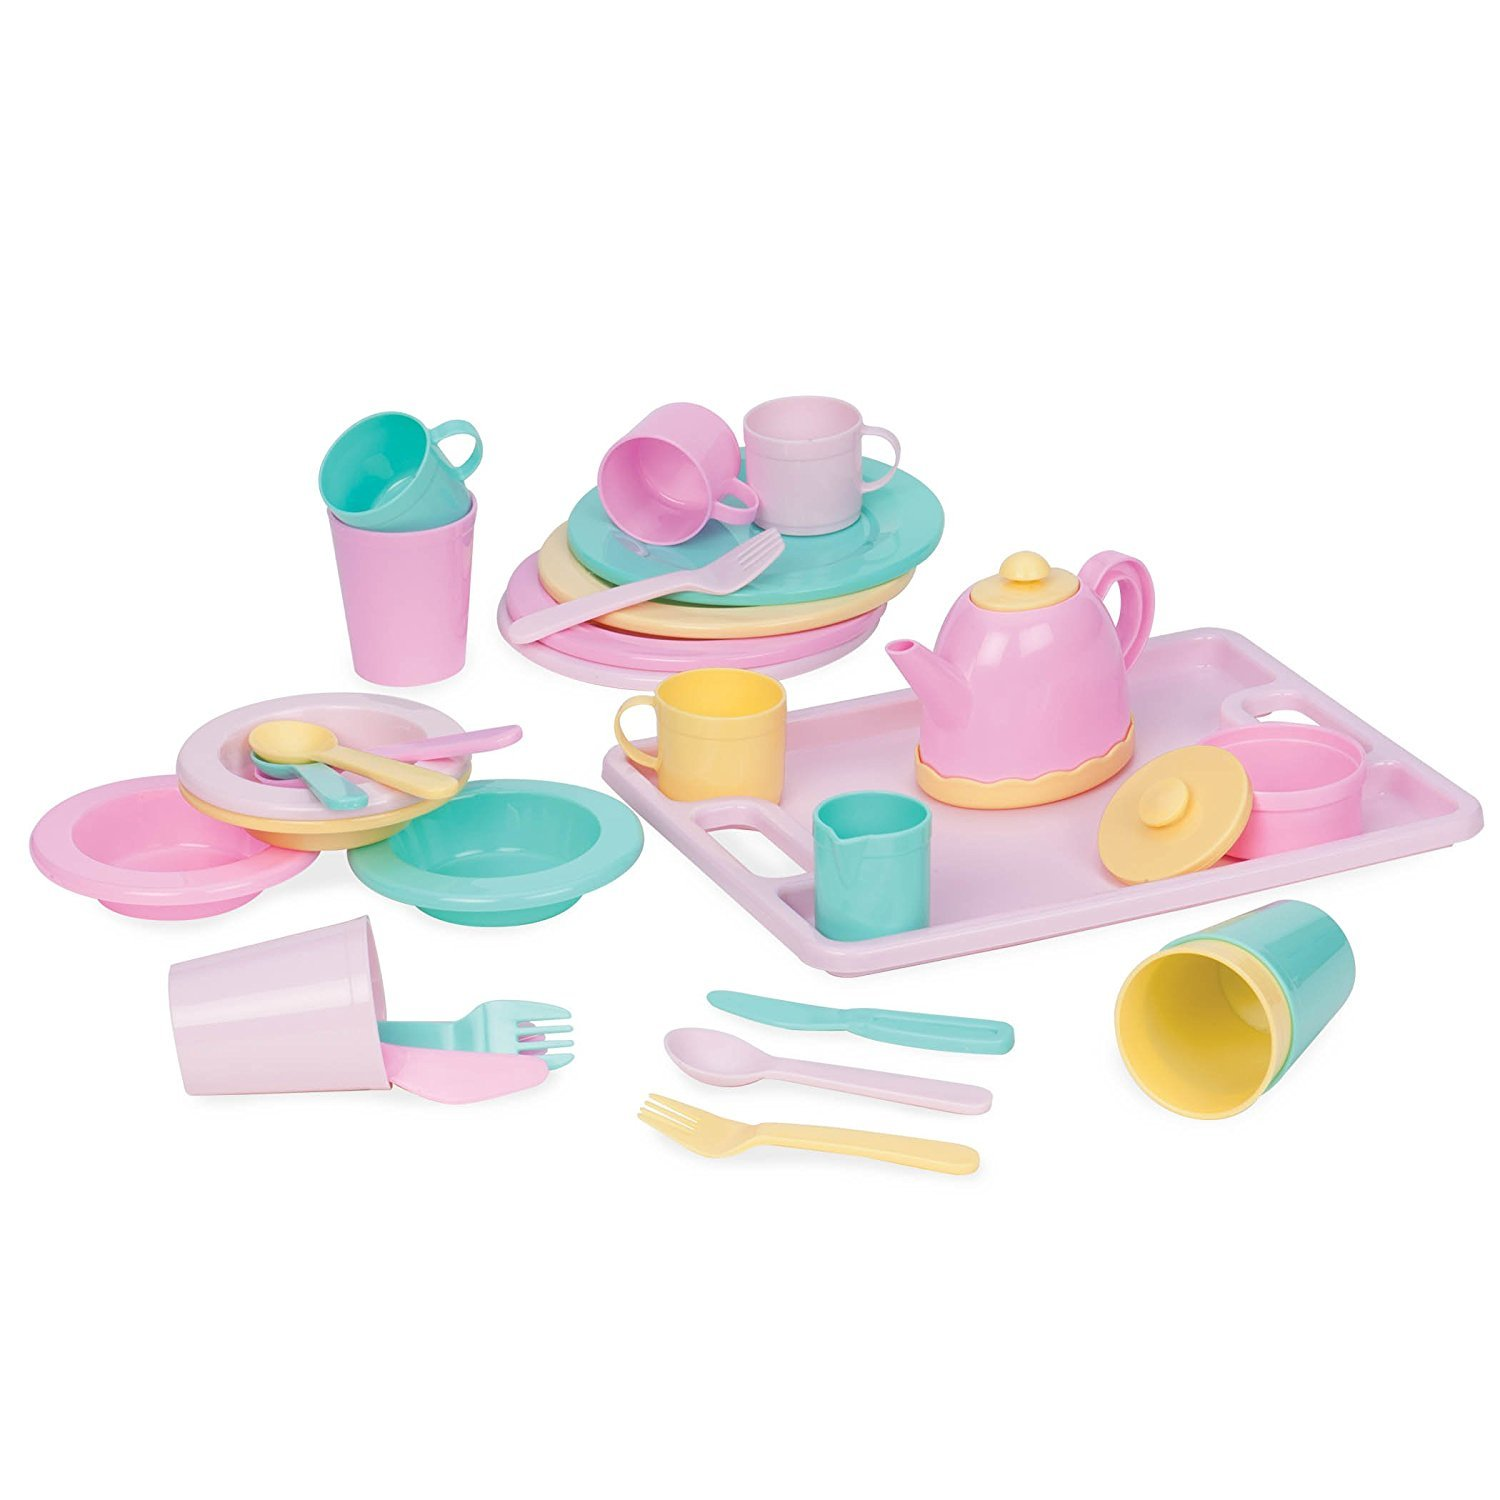 Play Circle by Battat – Dishes Wishes Dinnerware Set – 34-piece Kids Dishes and Utensils Playset – Pretend Play Kitchen Set for Kids Age 3 Years and Up